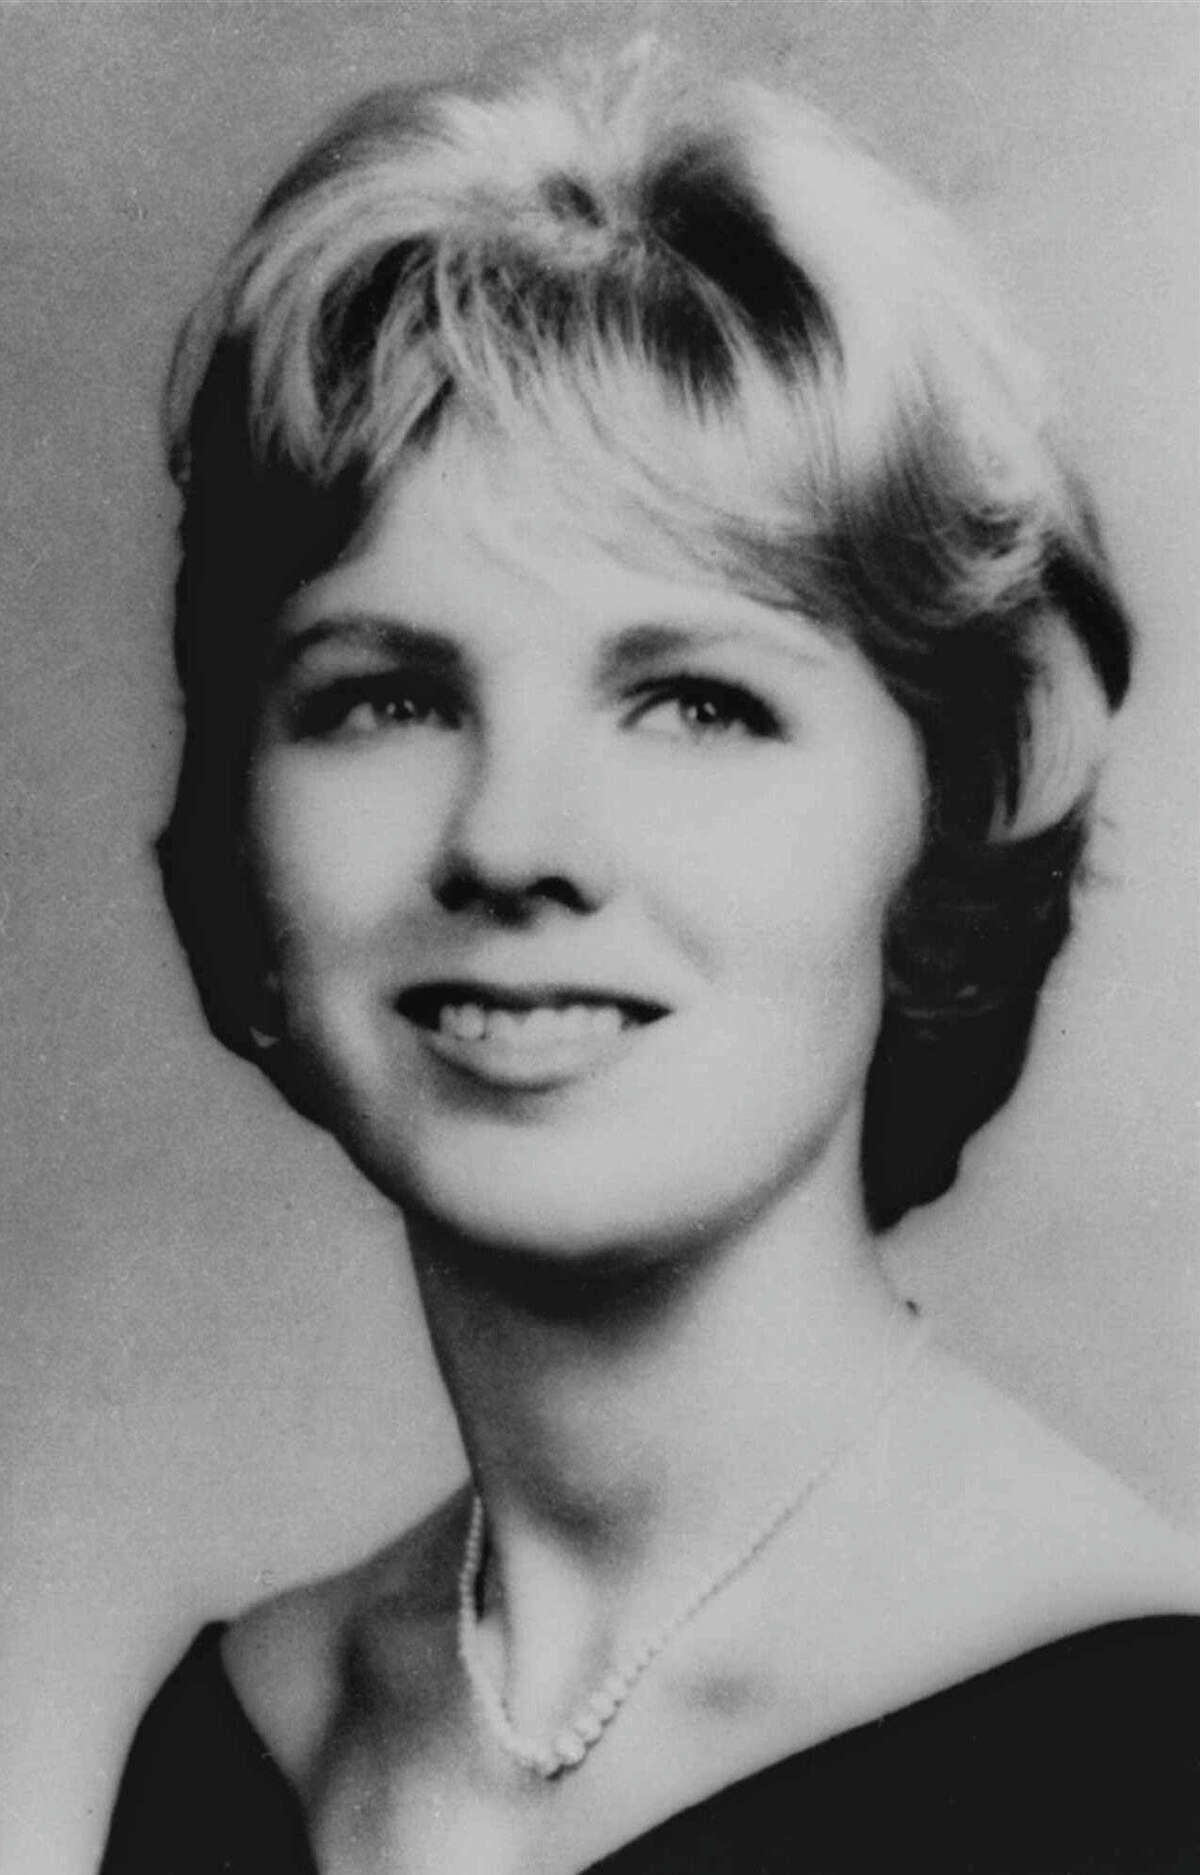 Mary Jo Kopechne, shown in this undated photo, was killed after Sen. Edward M. Kennedy drove a car off a bridge on Massachusetts' Chappaquiddick Island on July 18, 1969. (AP Photo)